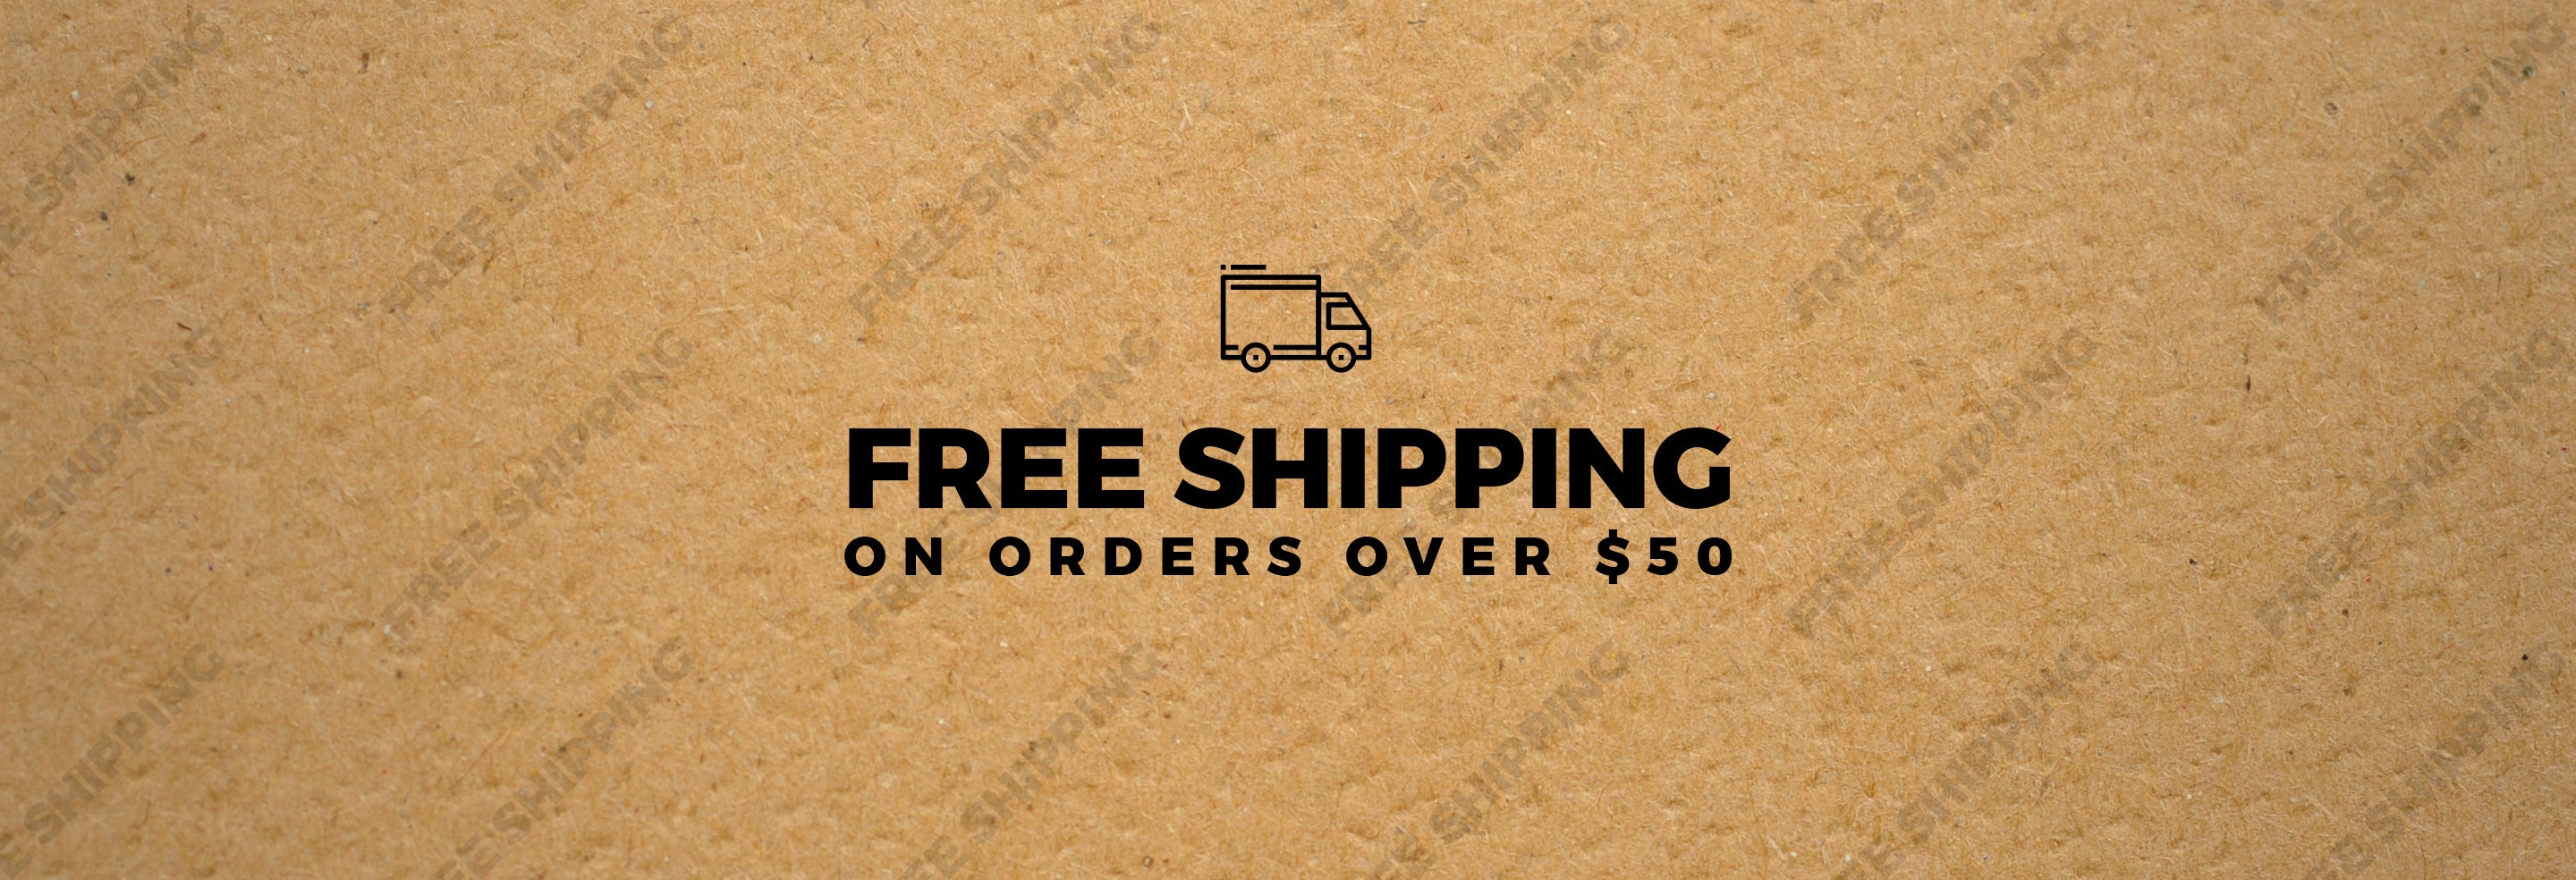 Vape Street offers free shipping on orders over $50.